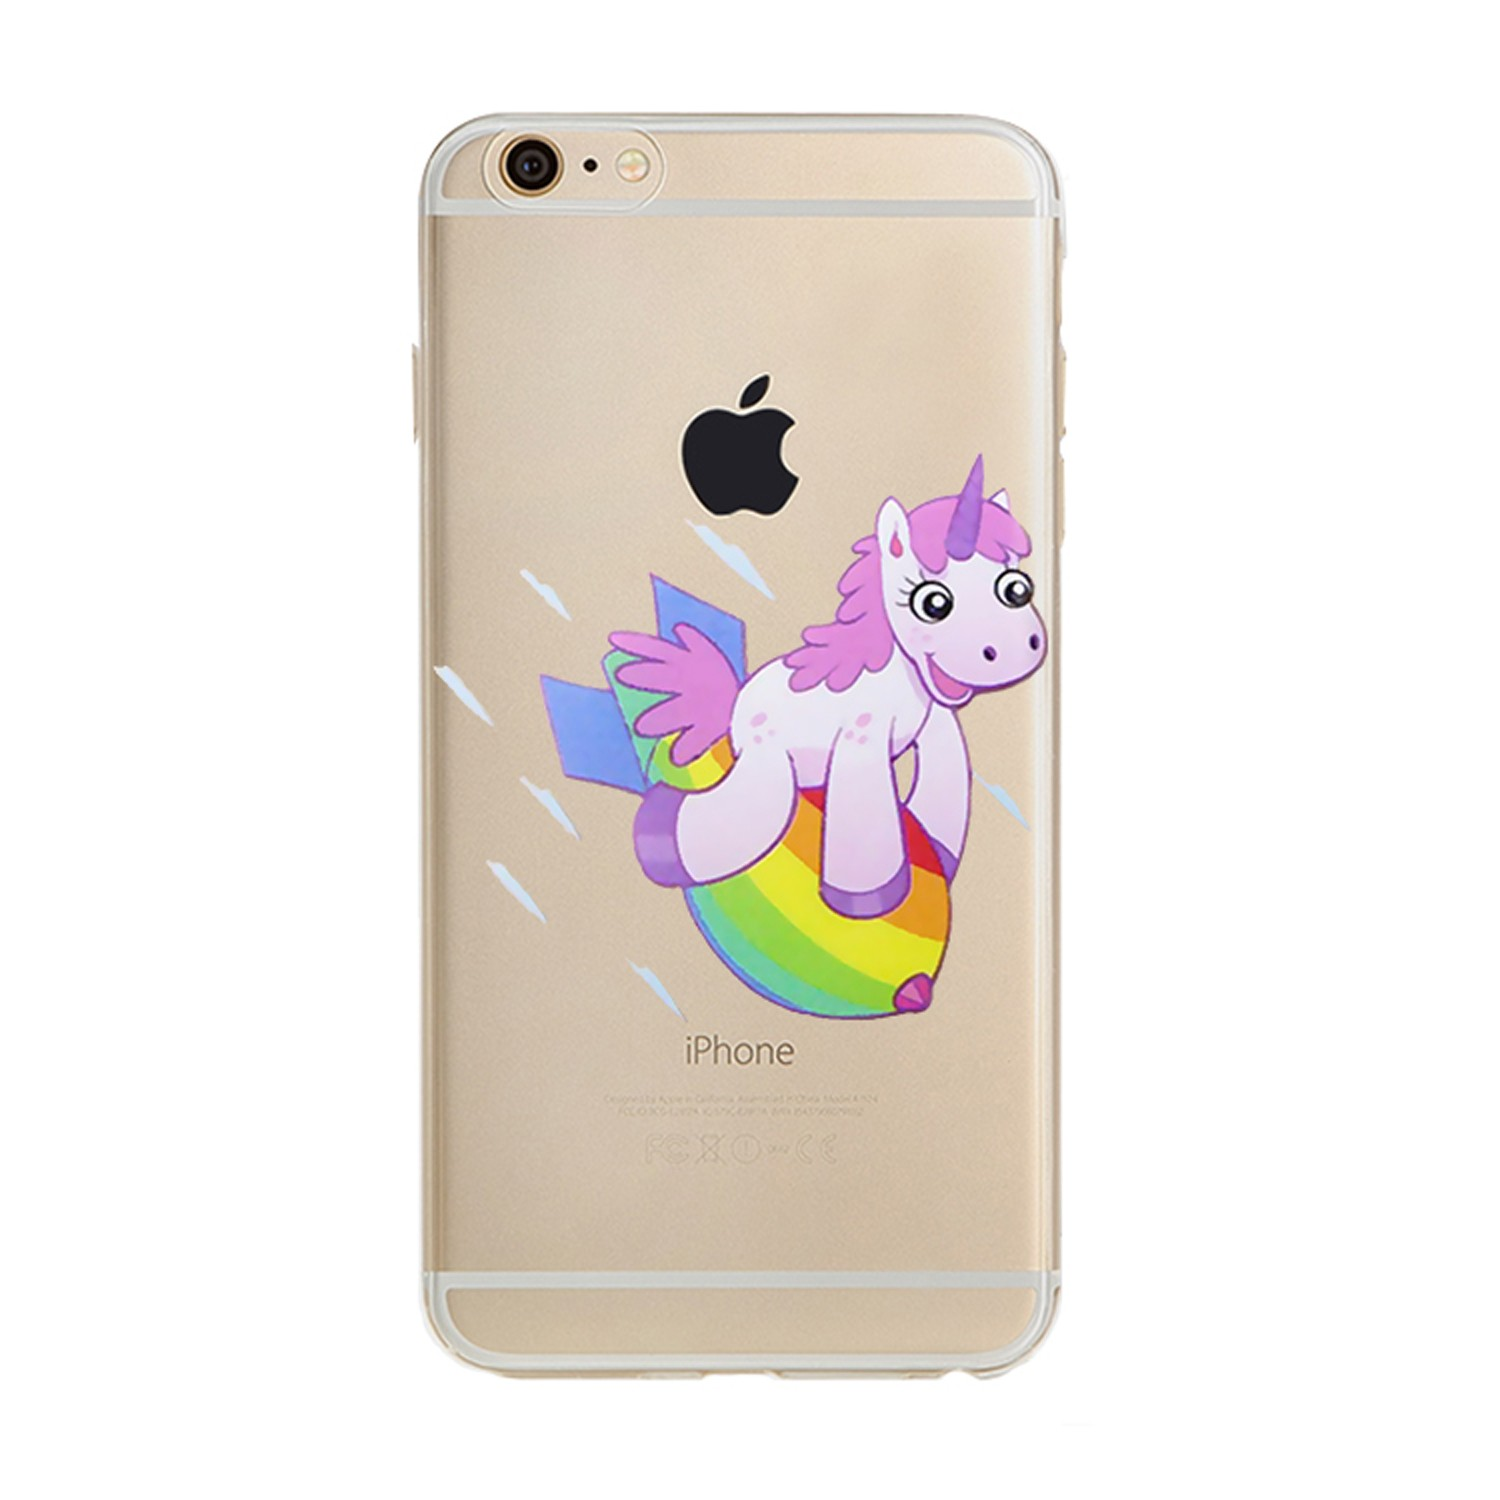 Kritzel Case für iPhone 6 / 6s - Unicorn #8